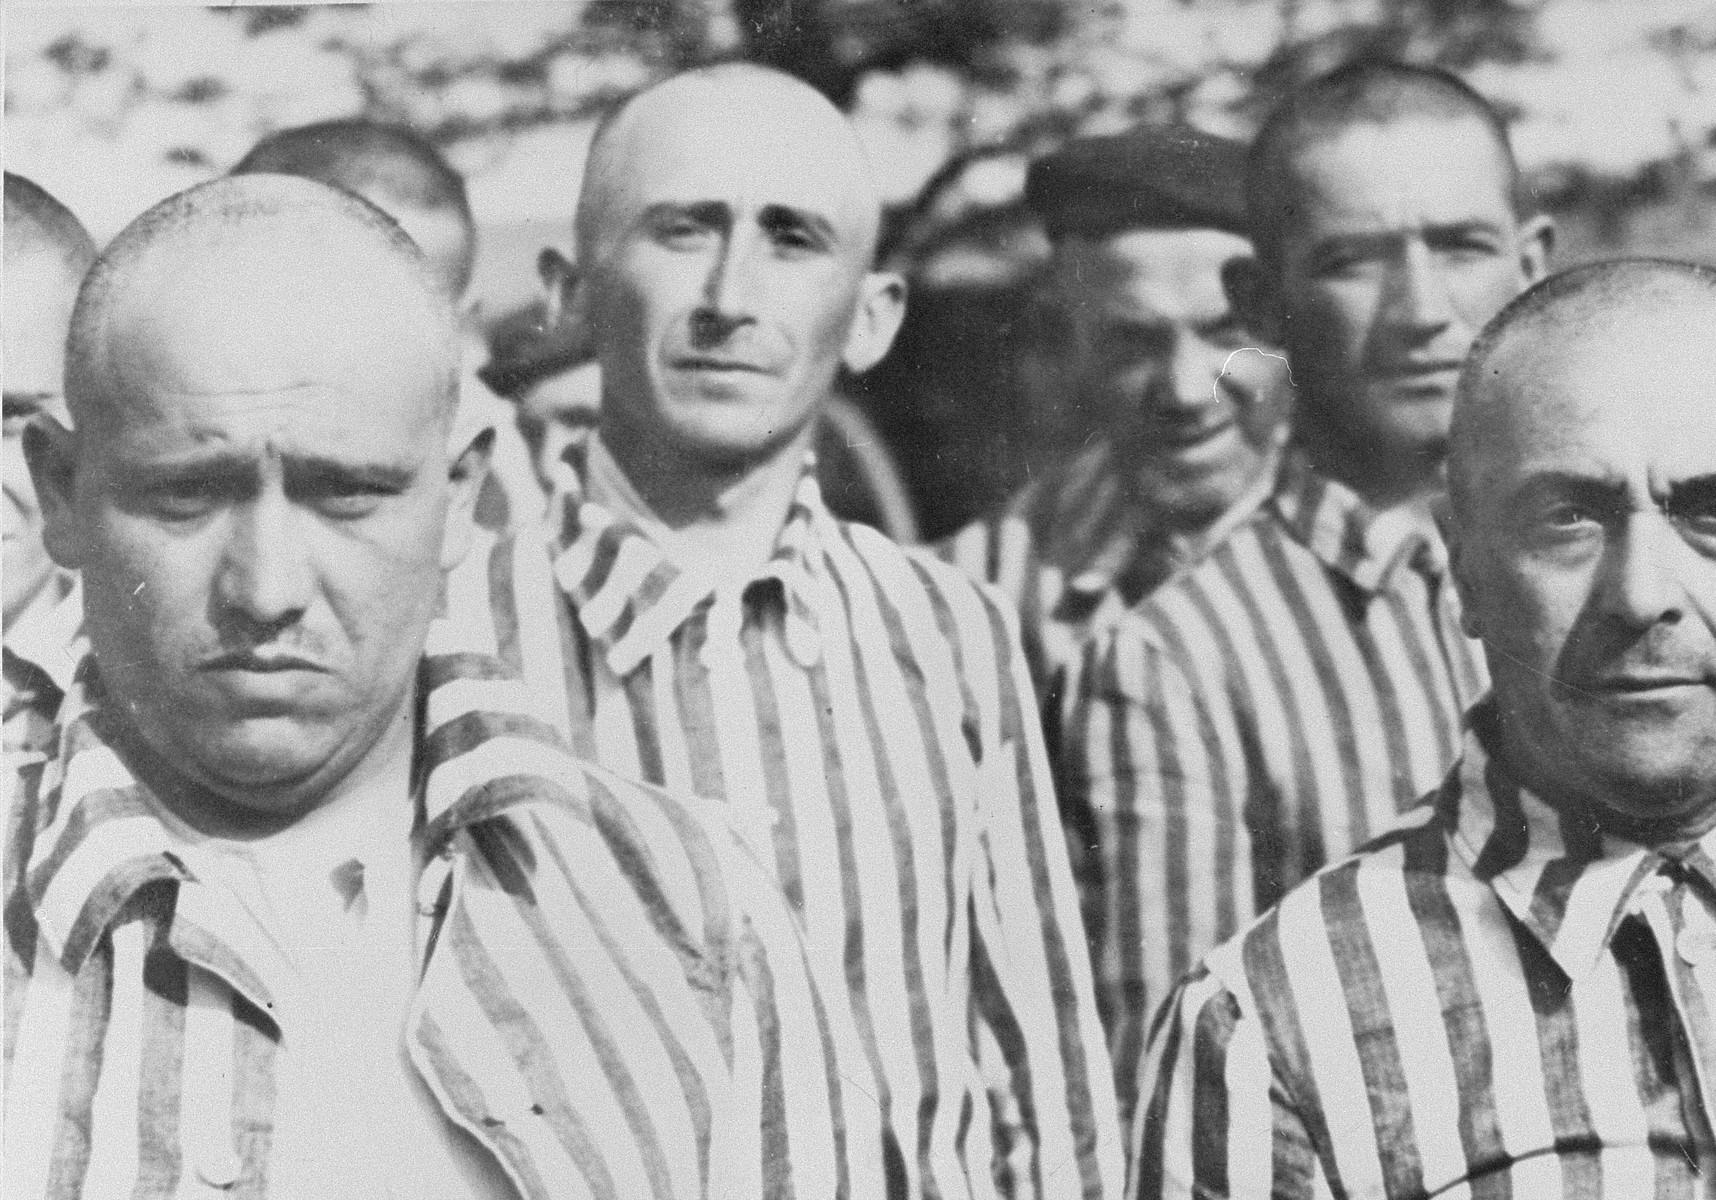 Jewish men from Subcarpathian Rus who have been, selected for forced labor at Auschwitz-Birkenau, stand in their newly issued prison uniforms at a roll call.   Among those pictured is Shimson Falikovics (second from the left) and Istvan Balasza (front, right).